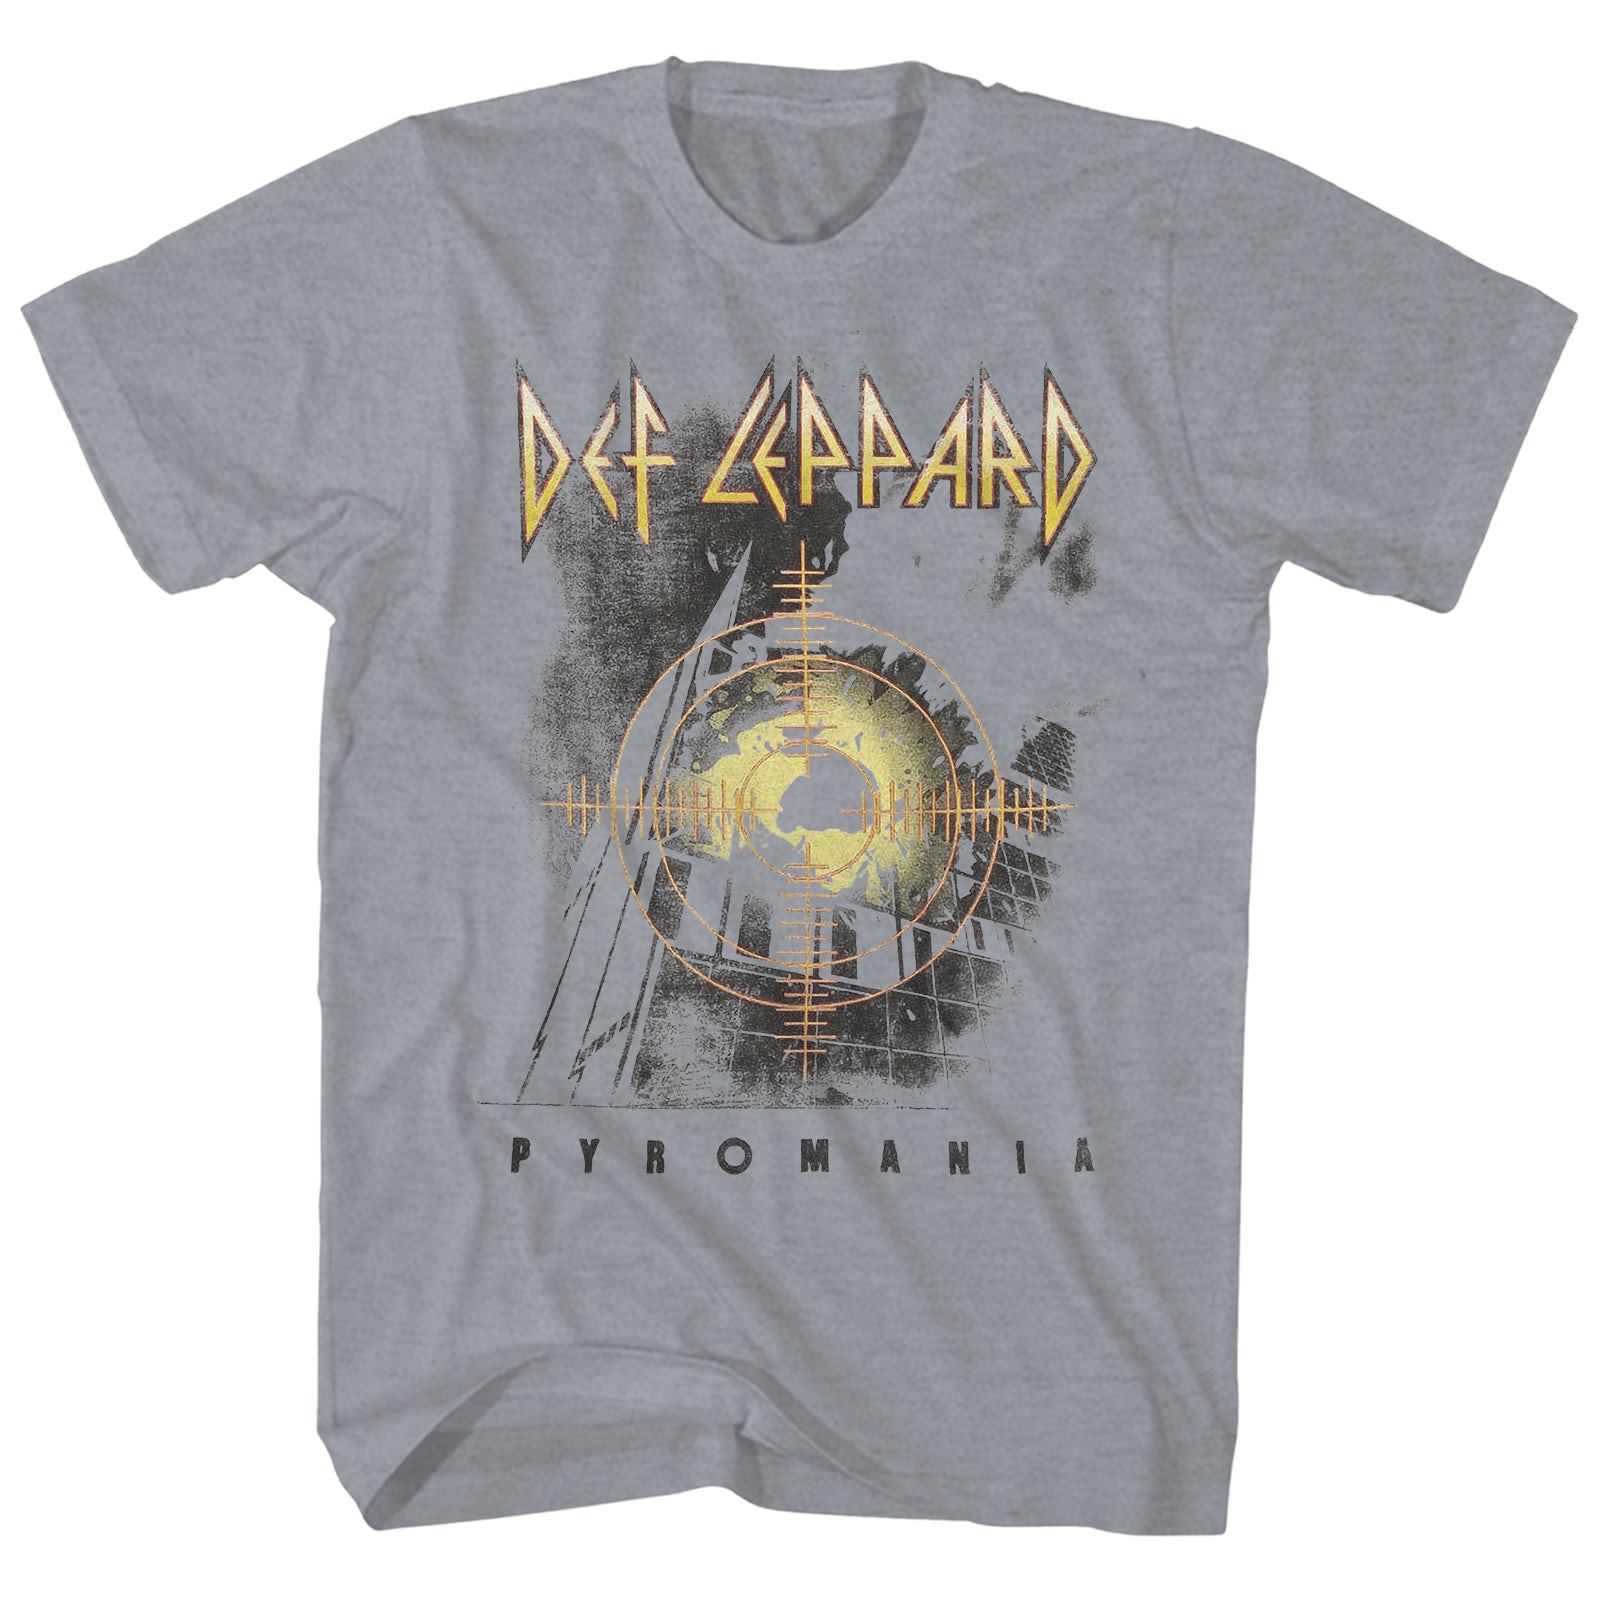 Def Leppard /'Pyromania Album/' ?T-Shirt NEW /& OFFICIAL!